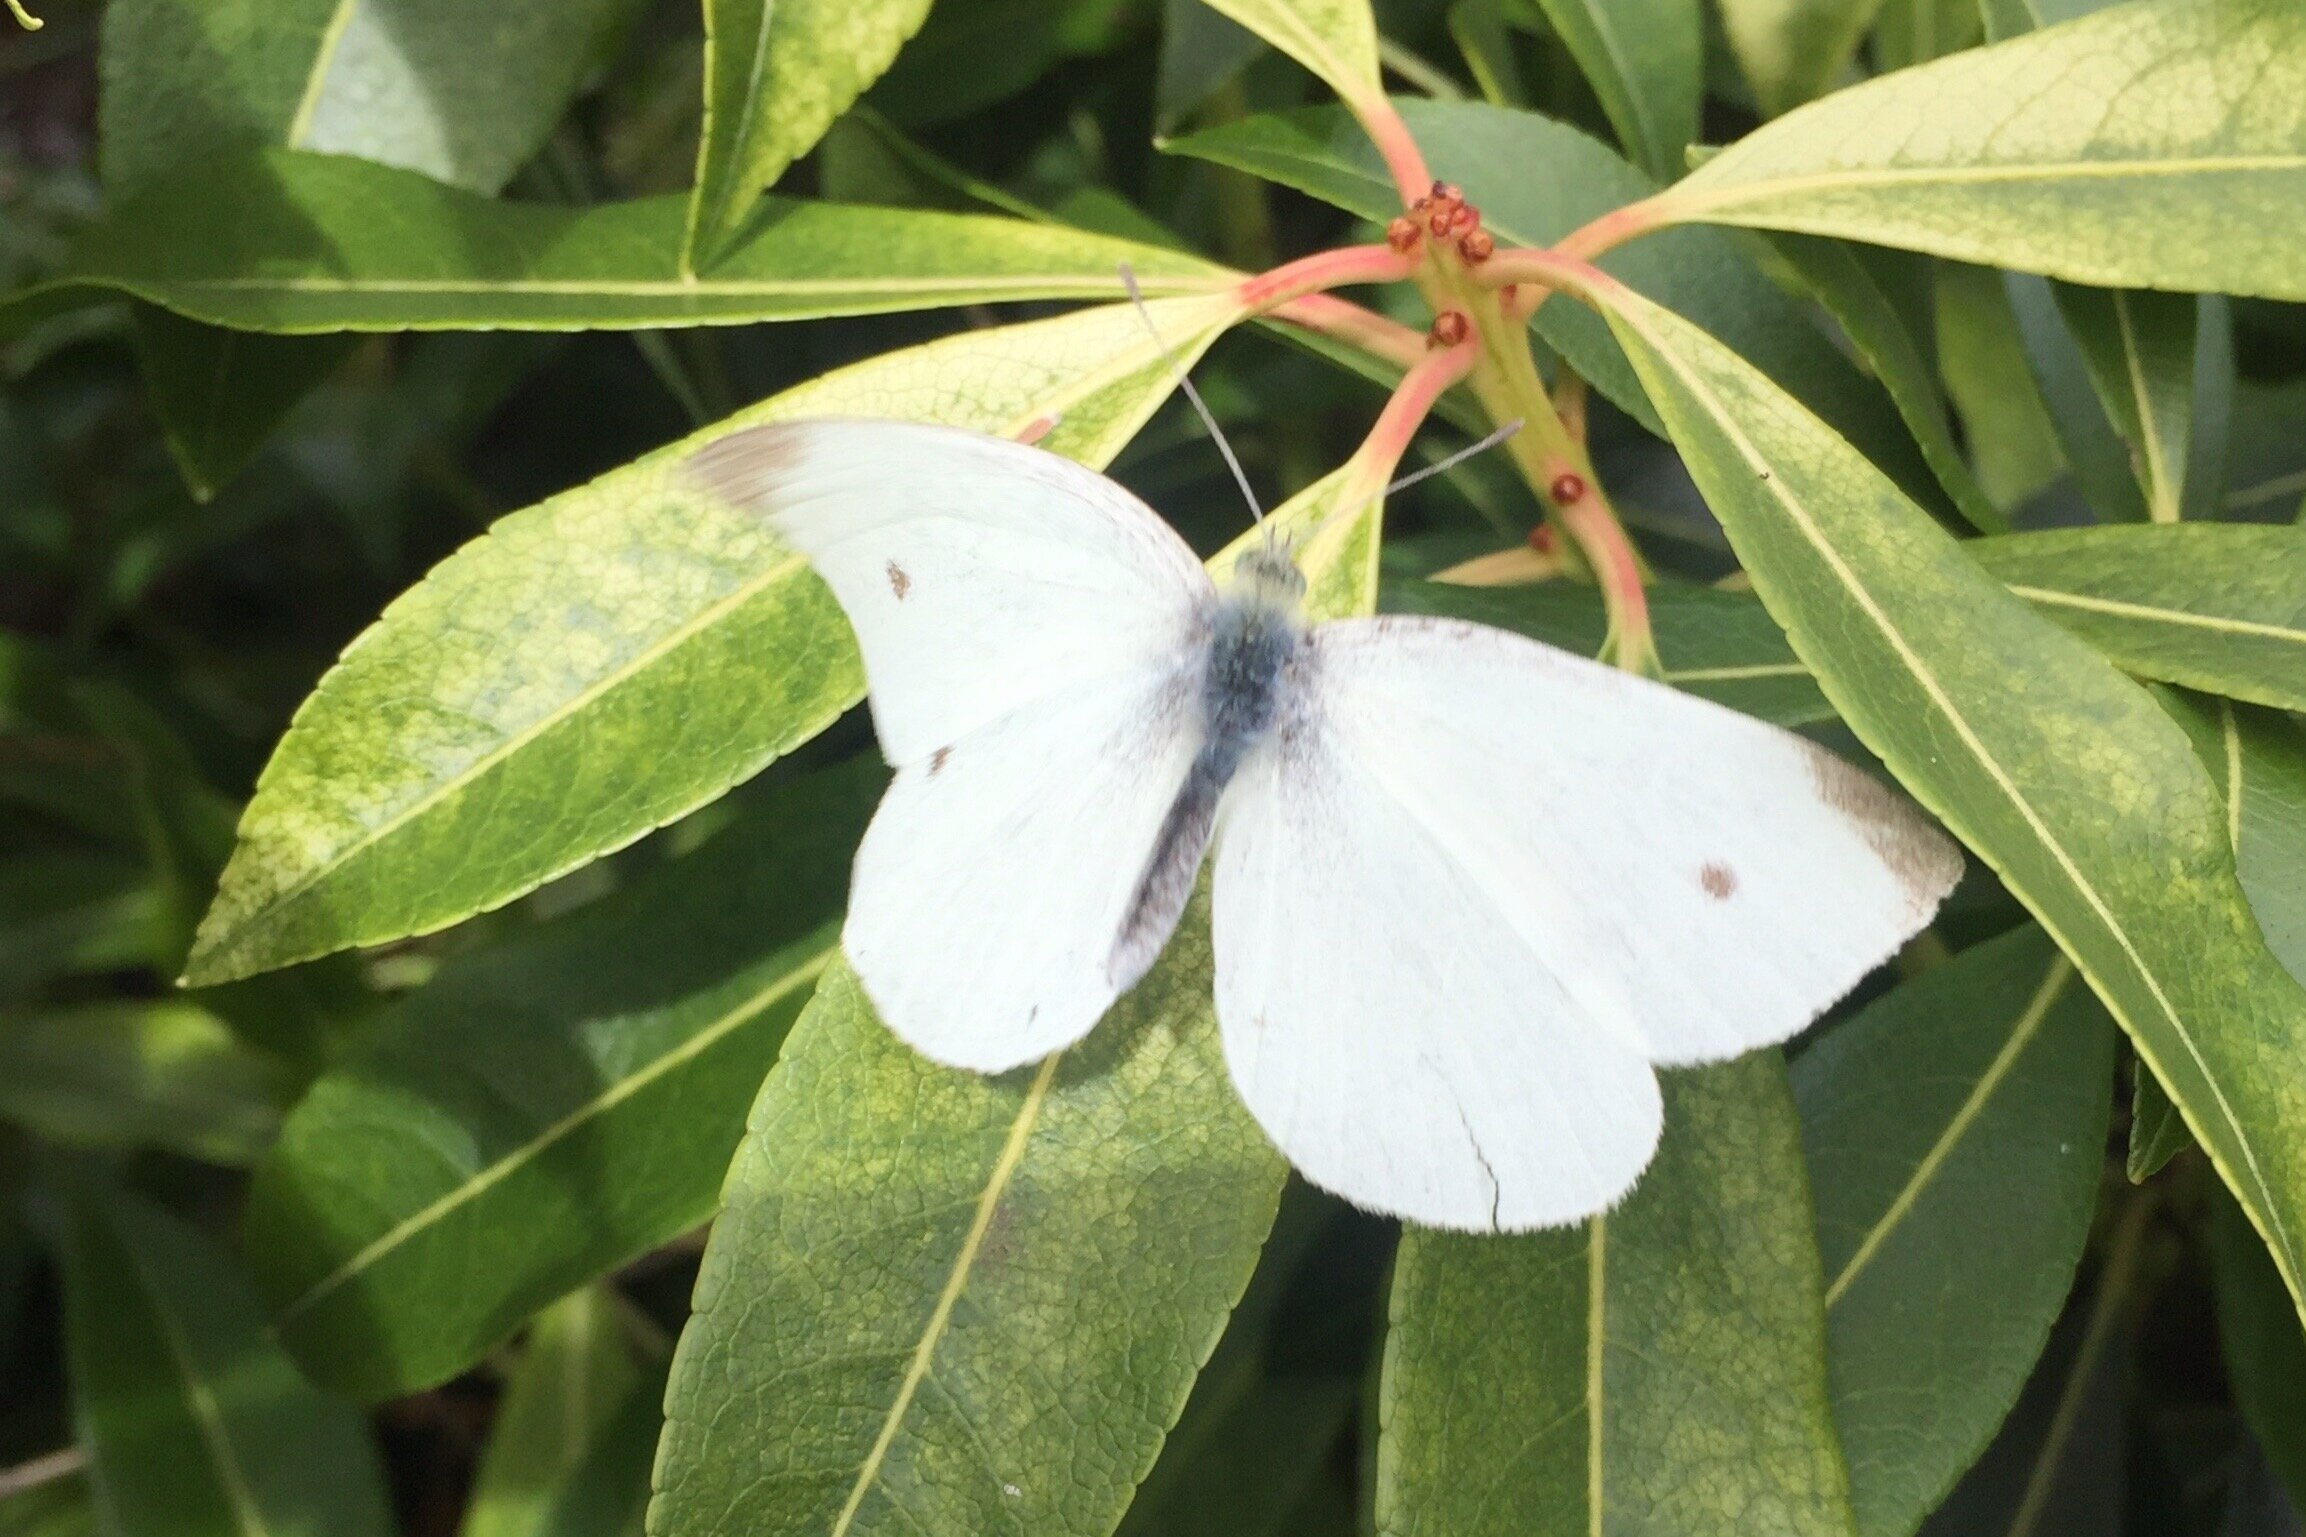 Small White (Pieris rapae) - This butterfly has brilliant white wings and although similar to the Large White, is smaller and with less prominent black wing tips. Like the Large White, it favours gardens and allotments where it's preferred larval food plants can be foundCaterpillar foodplants: Brassica family